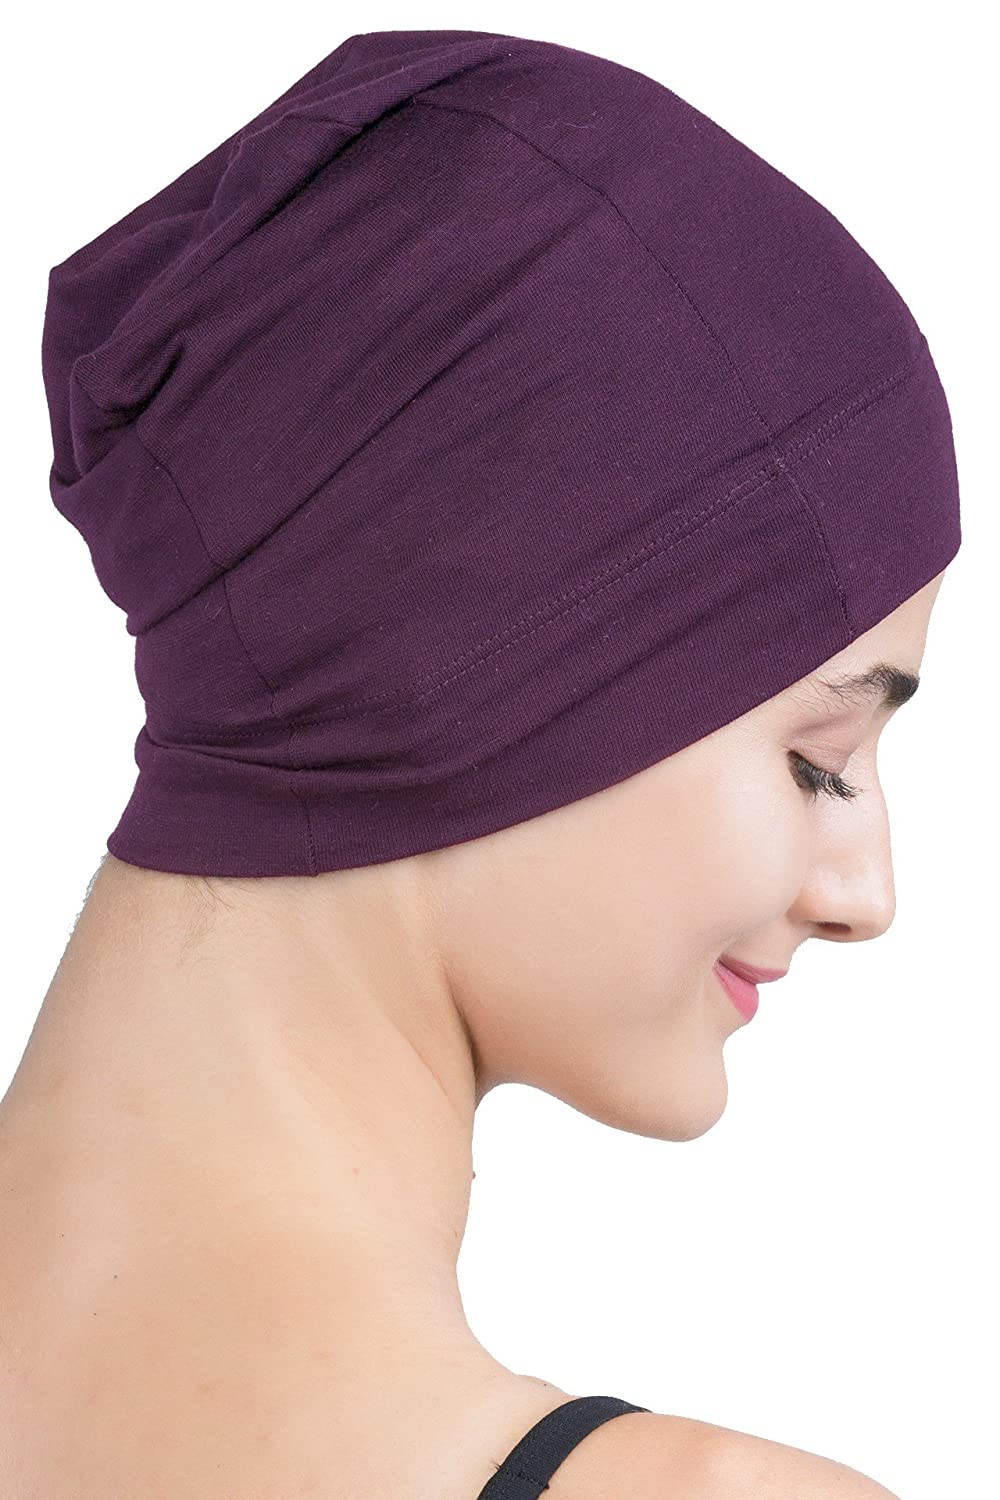 Deresina Women Snug-Fit Sleep Cap for Hair Loss